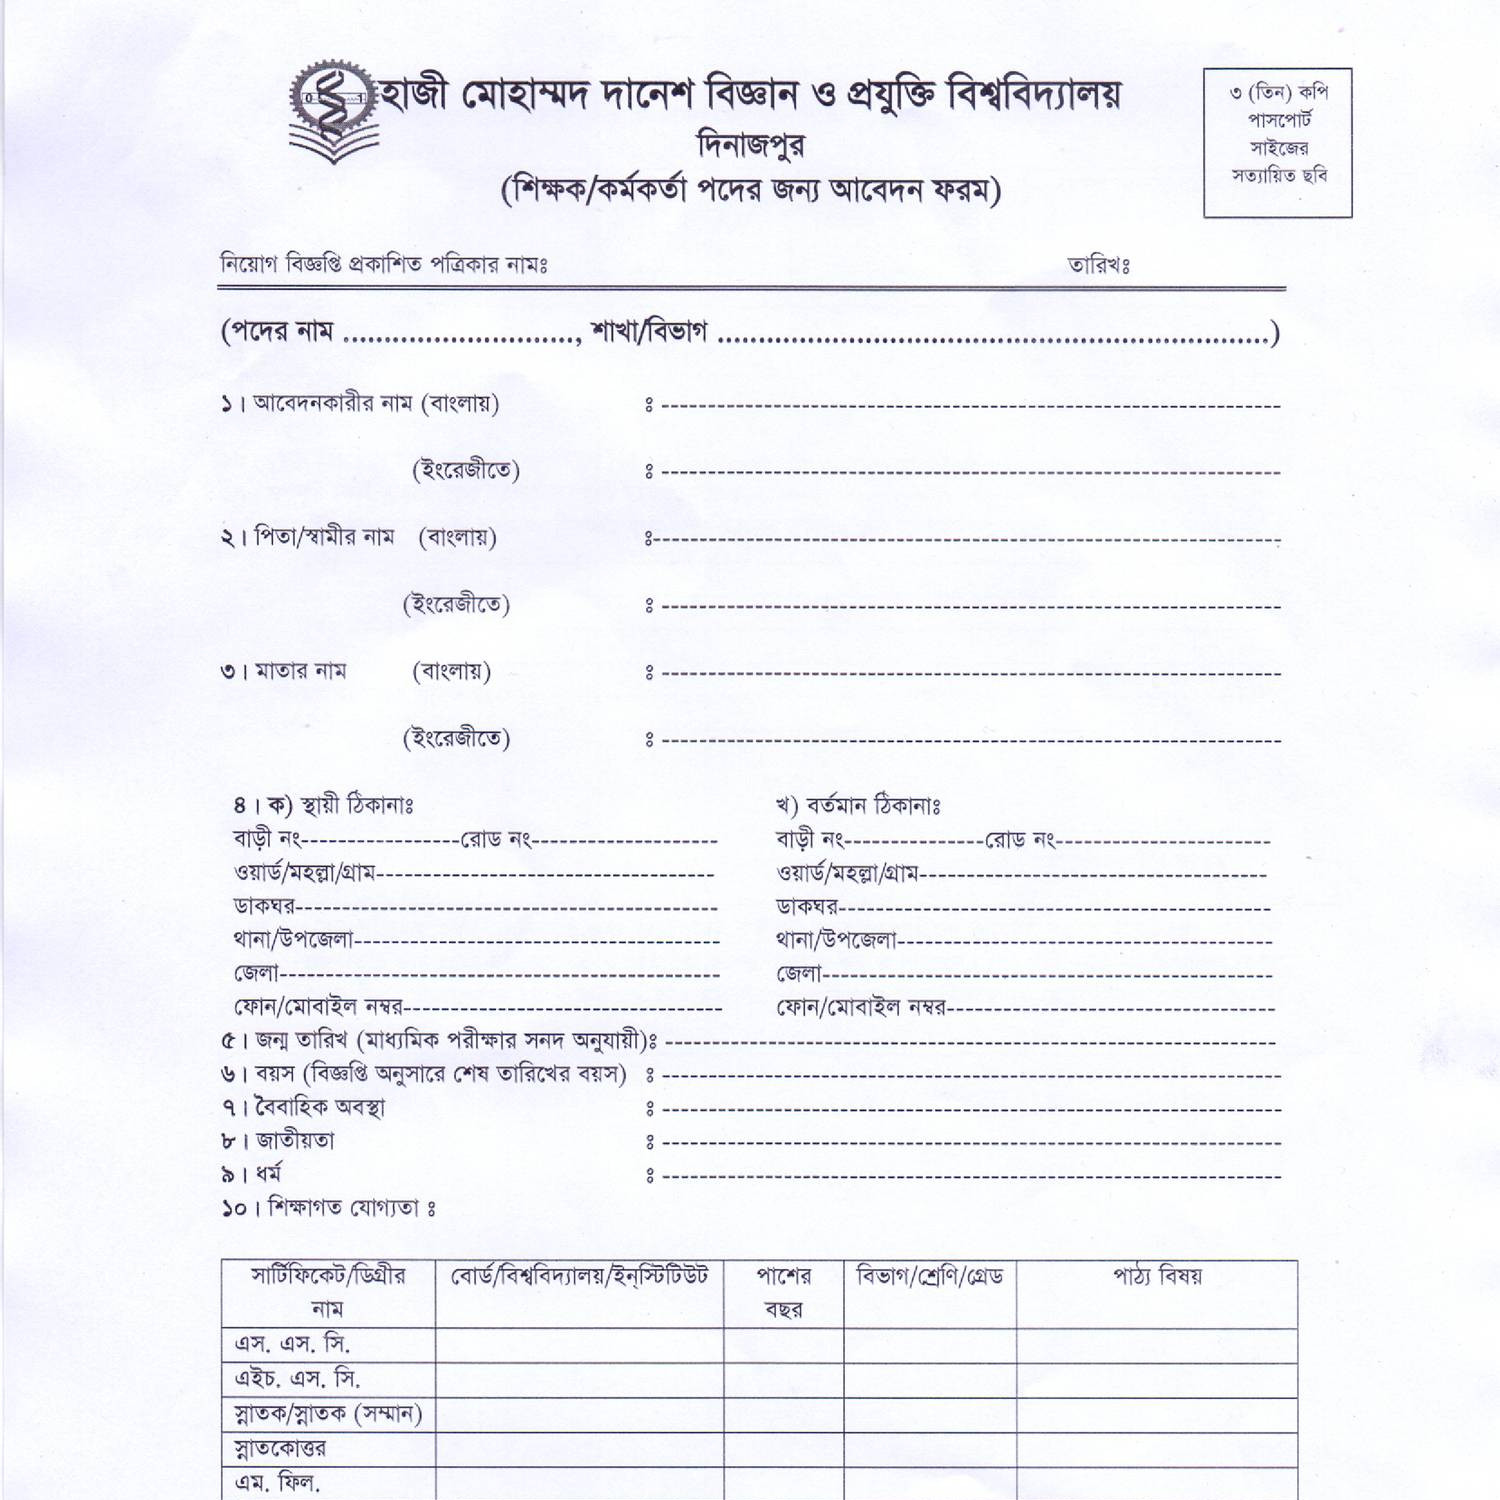 teacher-officer-application-form Teacher Application Form Pdf on out of order sign pdf, financial statement pdf, costco application pdf, blank employment application pdf, application form design, application form graphics, birth certificate pdf, application form print, fill out application pdf, application form online, application form excel, application form word document,